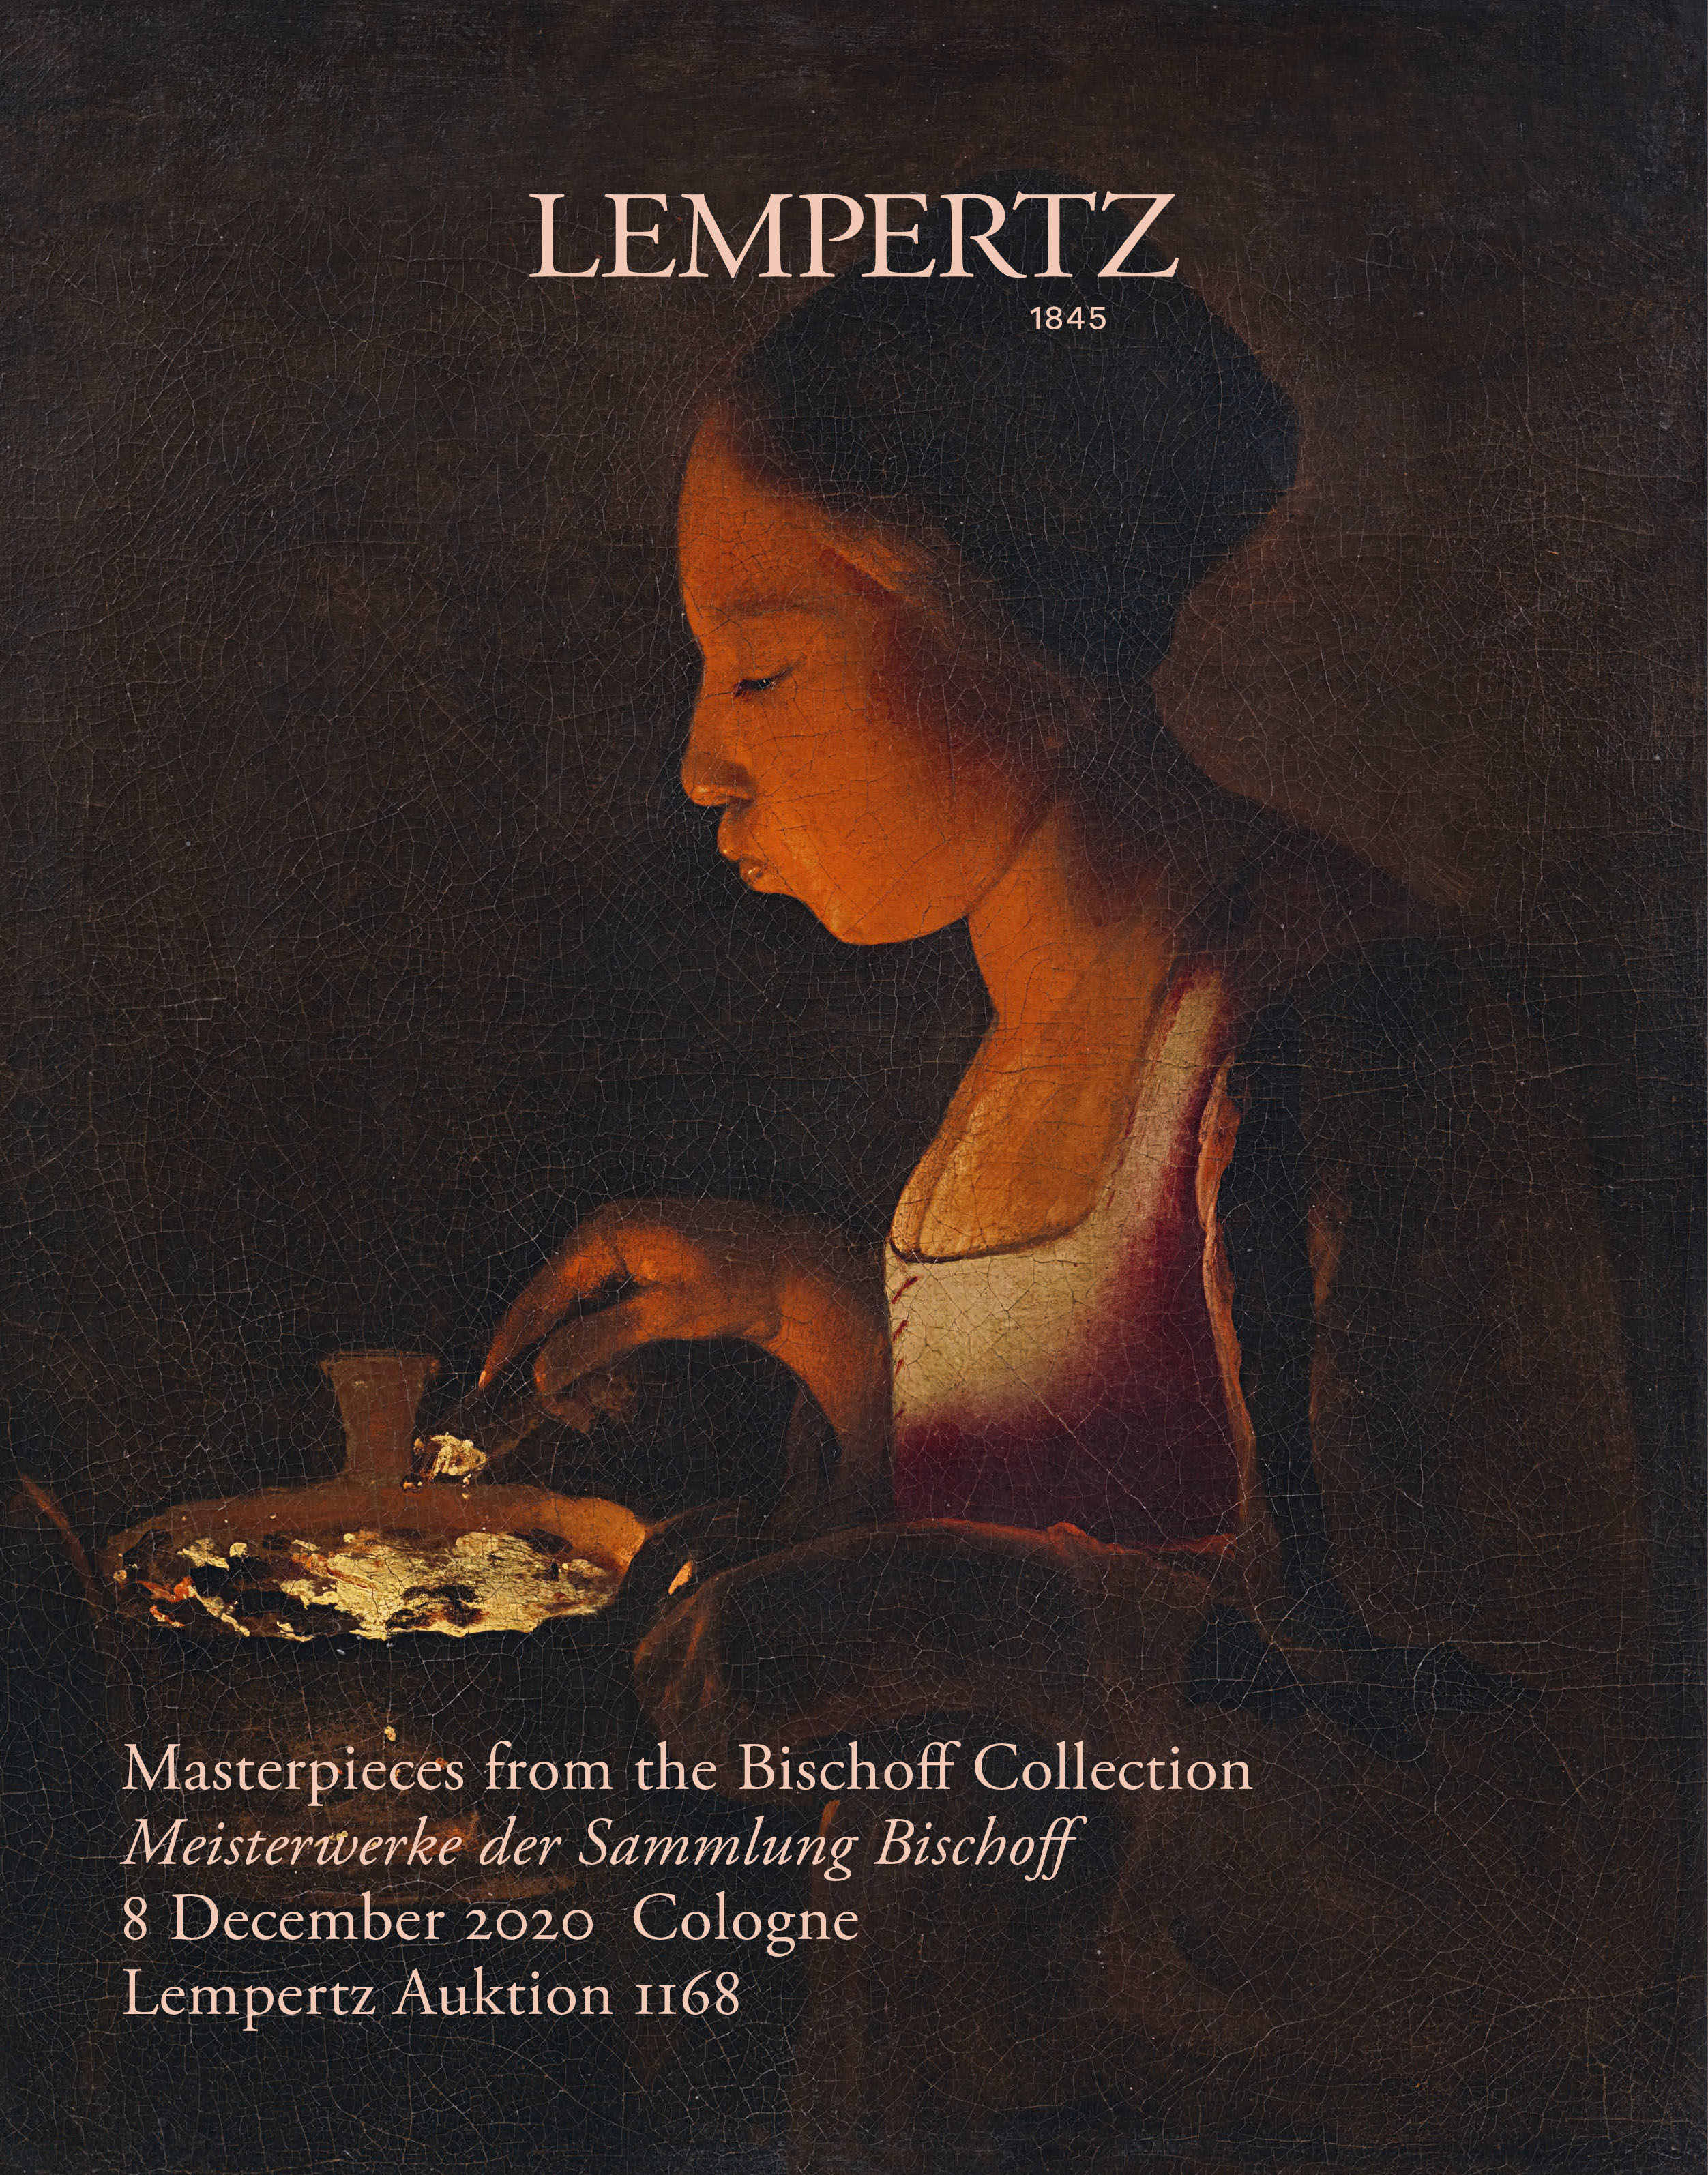 Catalogue - Masterpieces from the Bischoff Collection - Online Catalogue - Auction 1168 – Purchase valuable works of art at the next Lempertz-Auction!